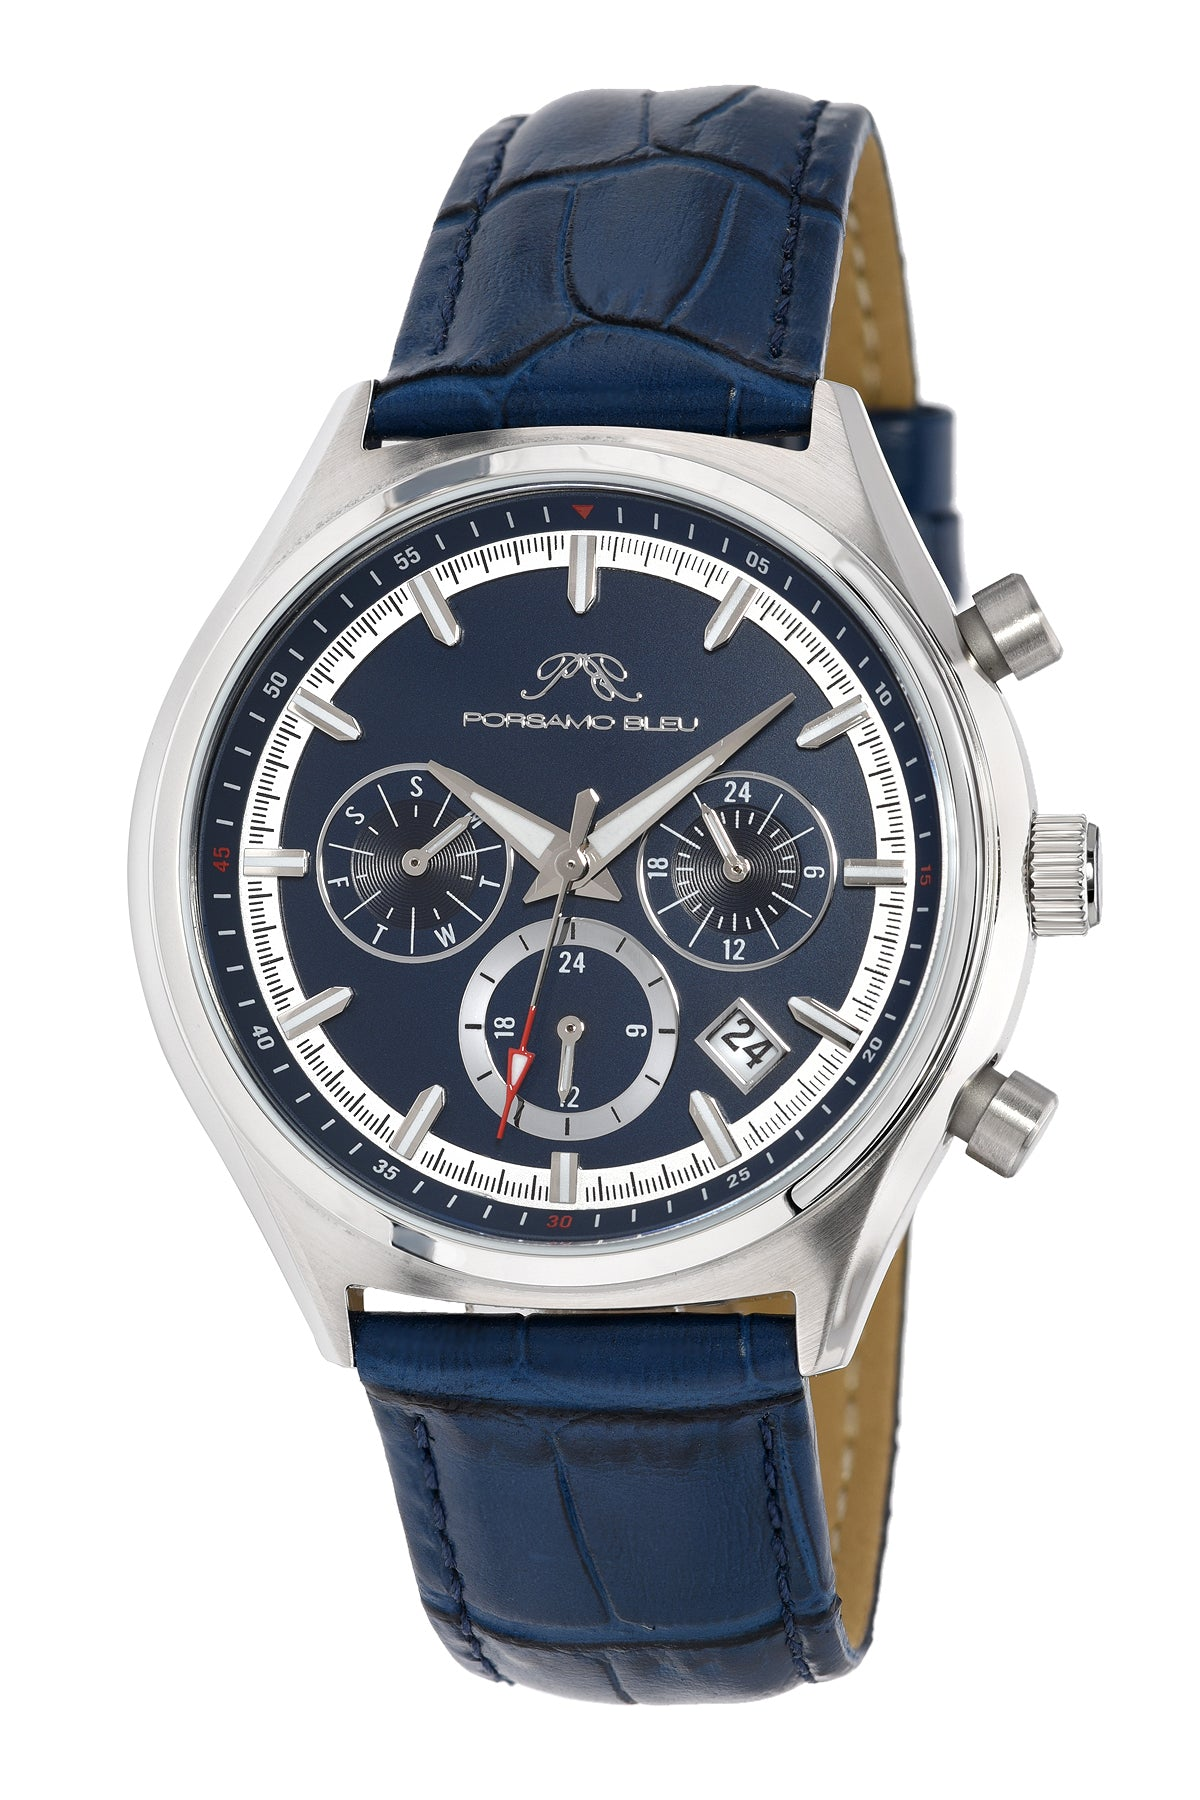 Porsamo Bleu Dylan luxury men's watch, genuine leather band, blue 871CDYL